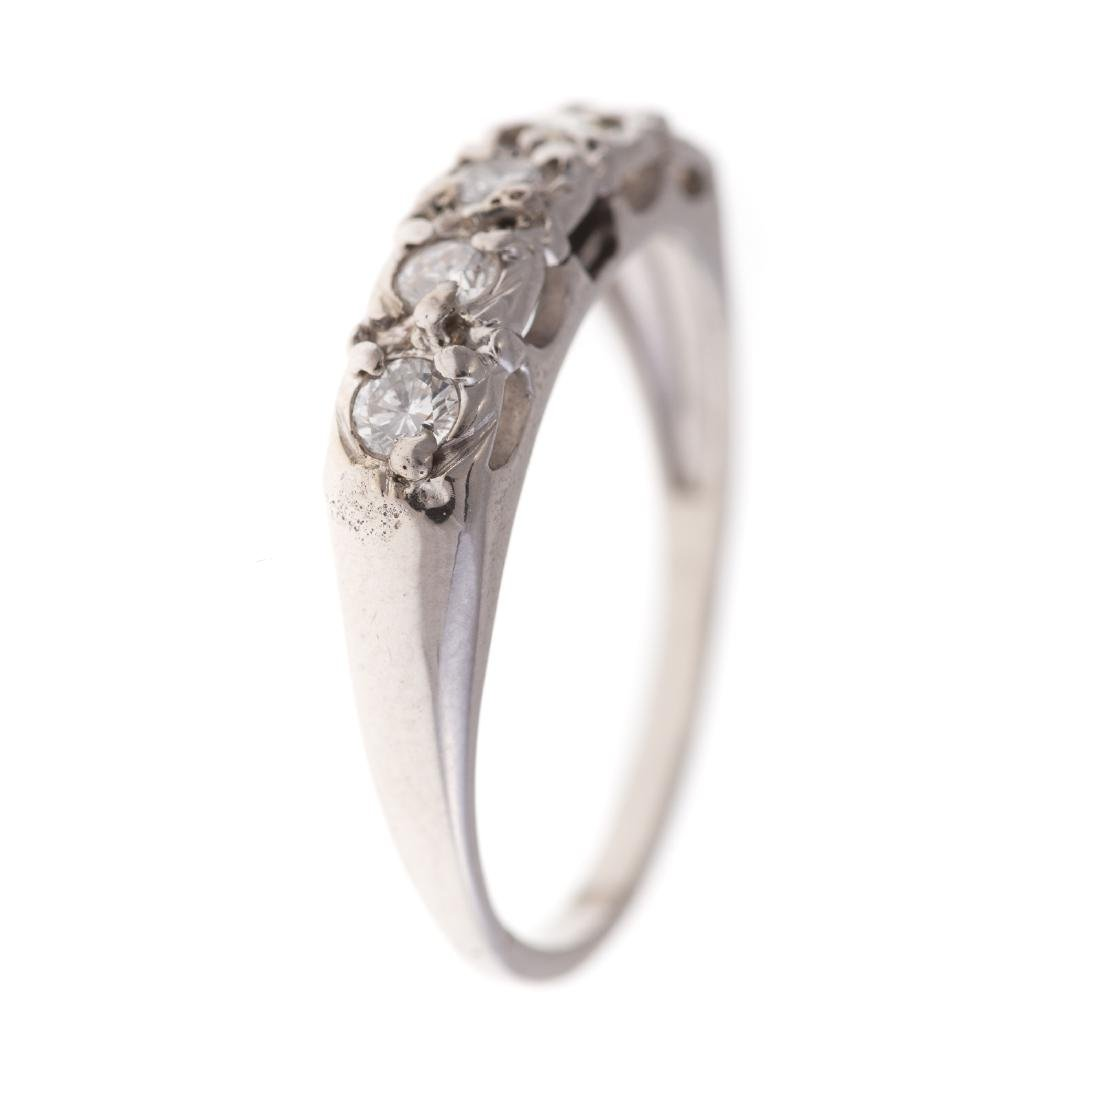 A Lady's Diamond Engagement Set in 14K White Gold - 3